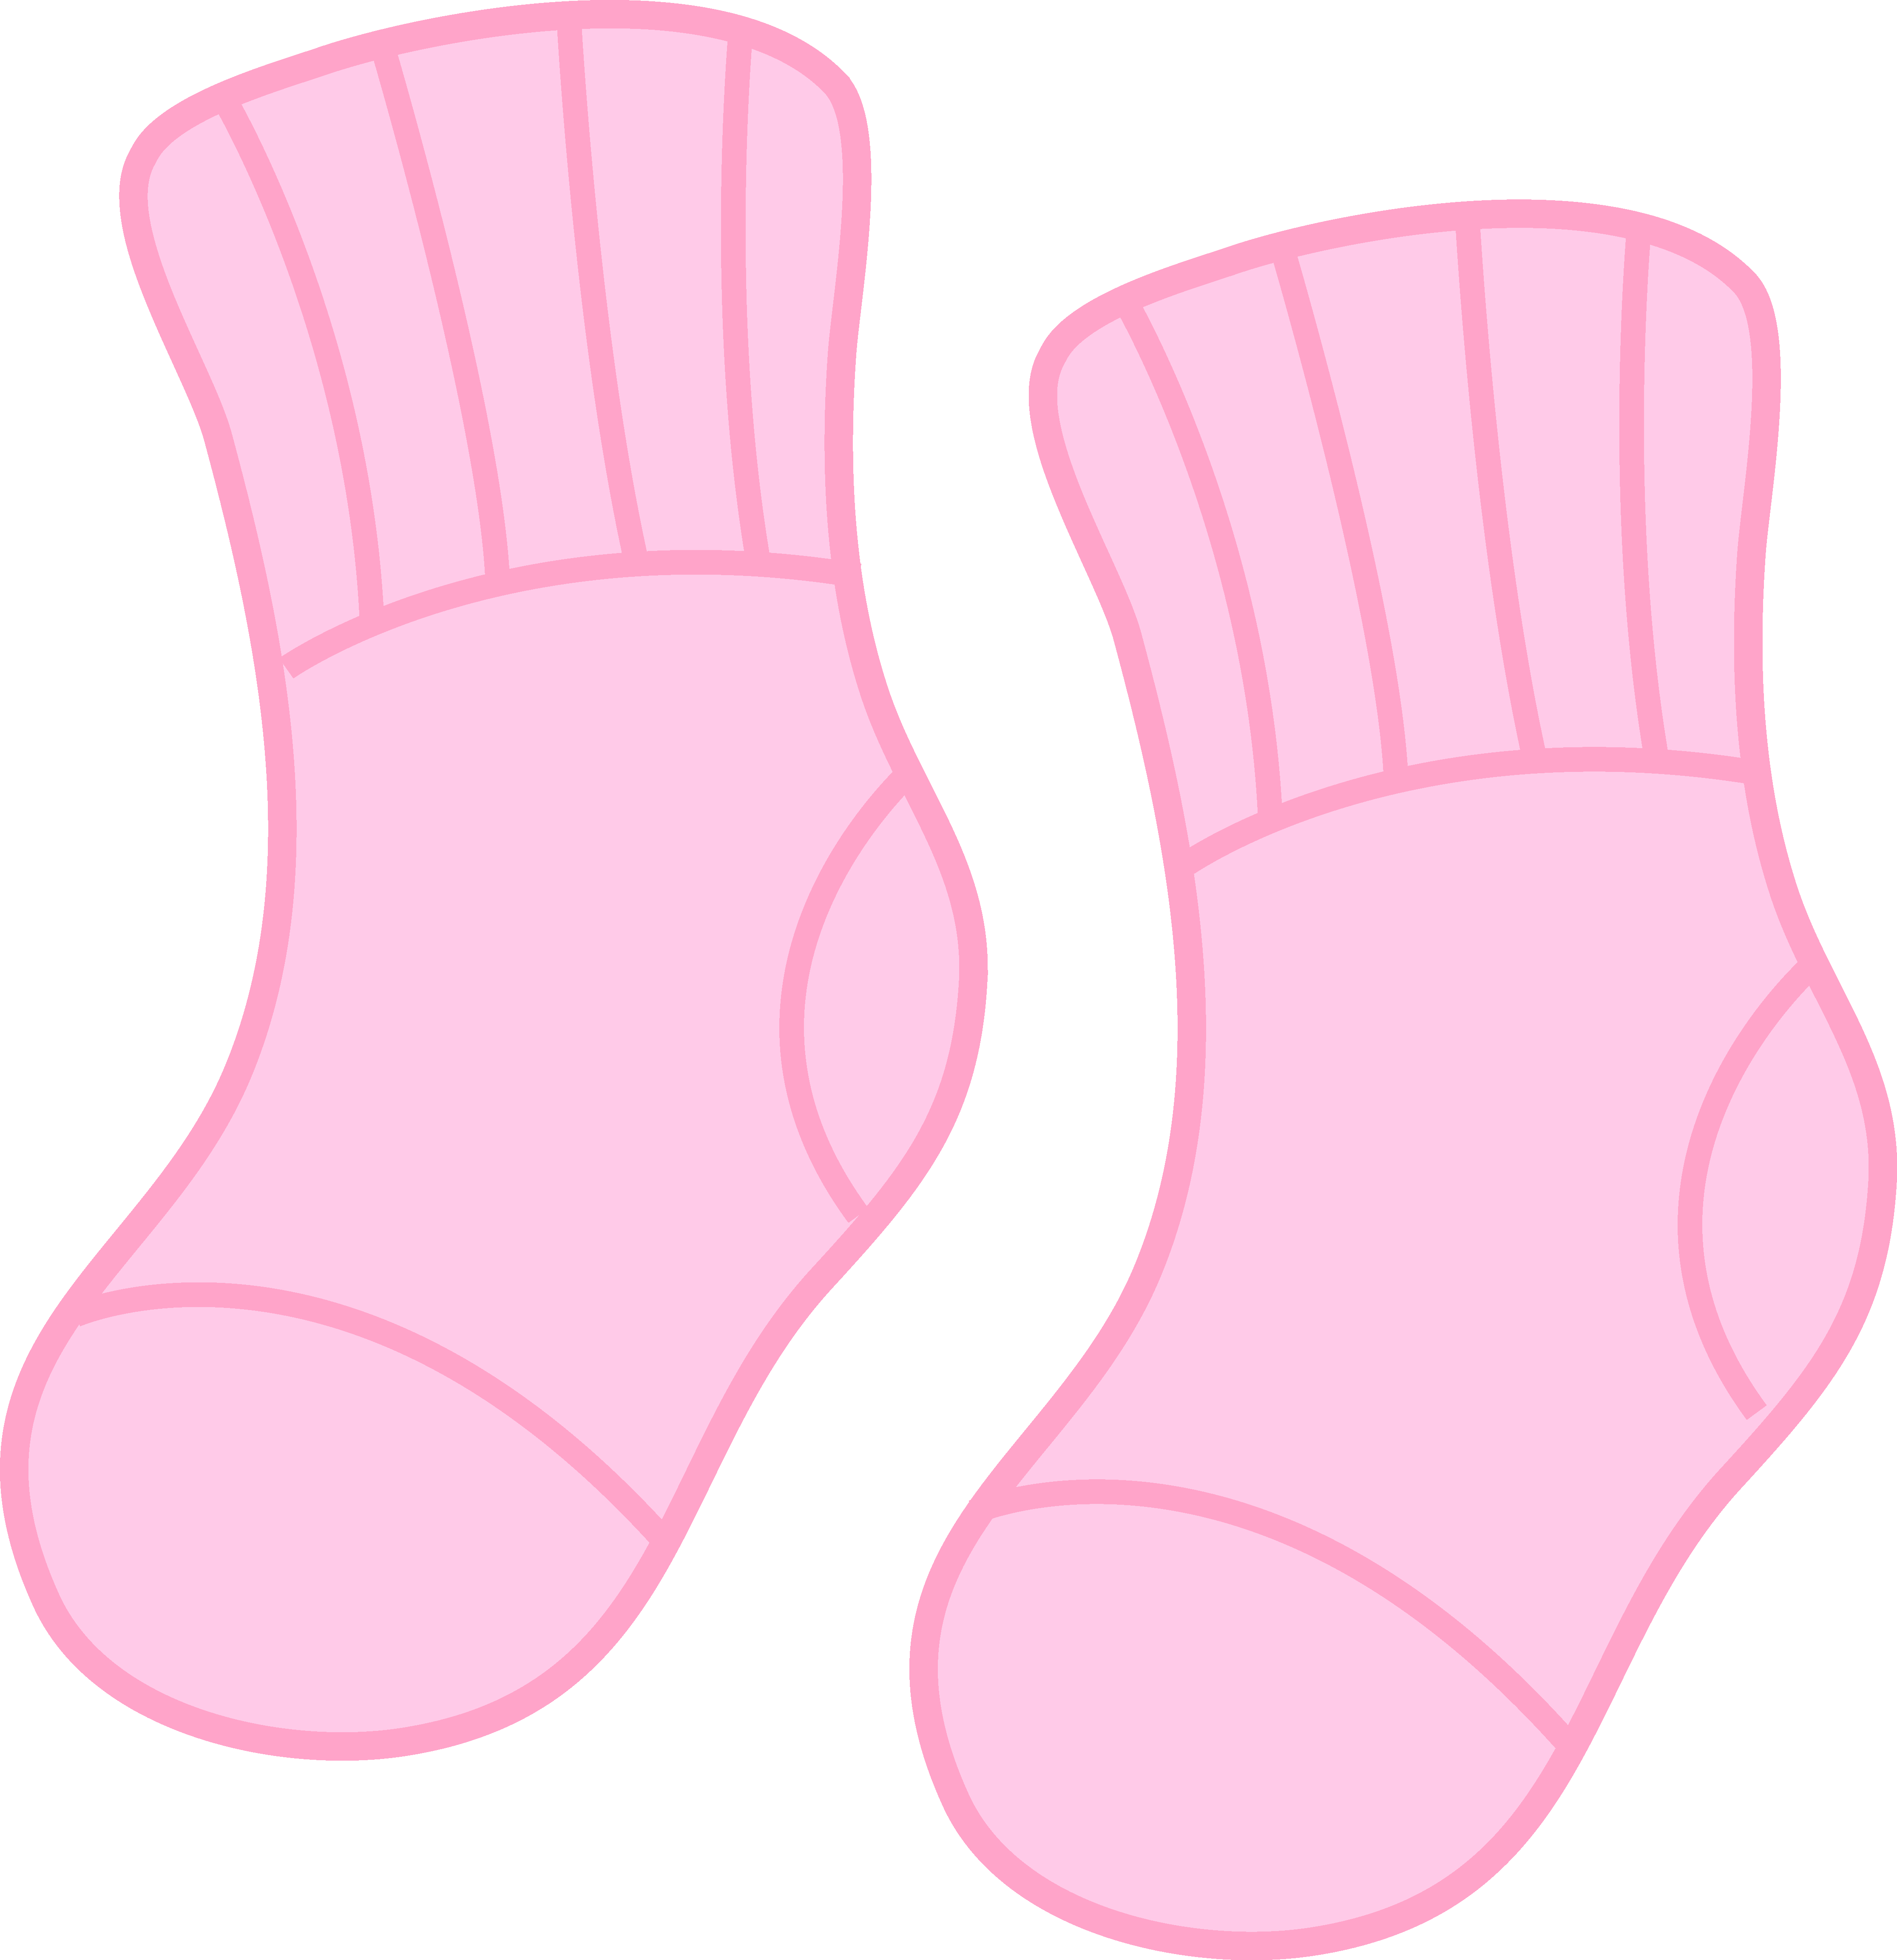 Clothing clipart sock. Free clip art baby